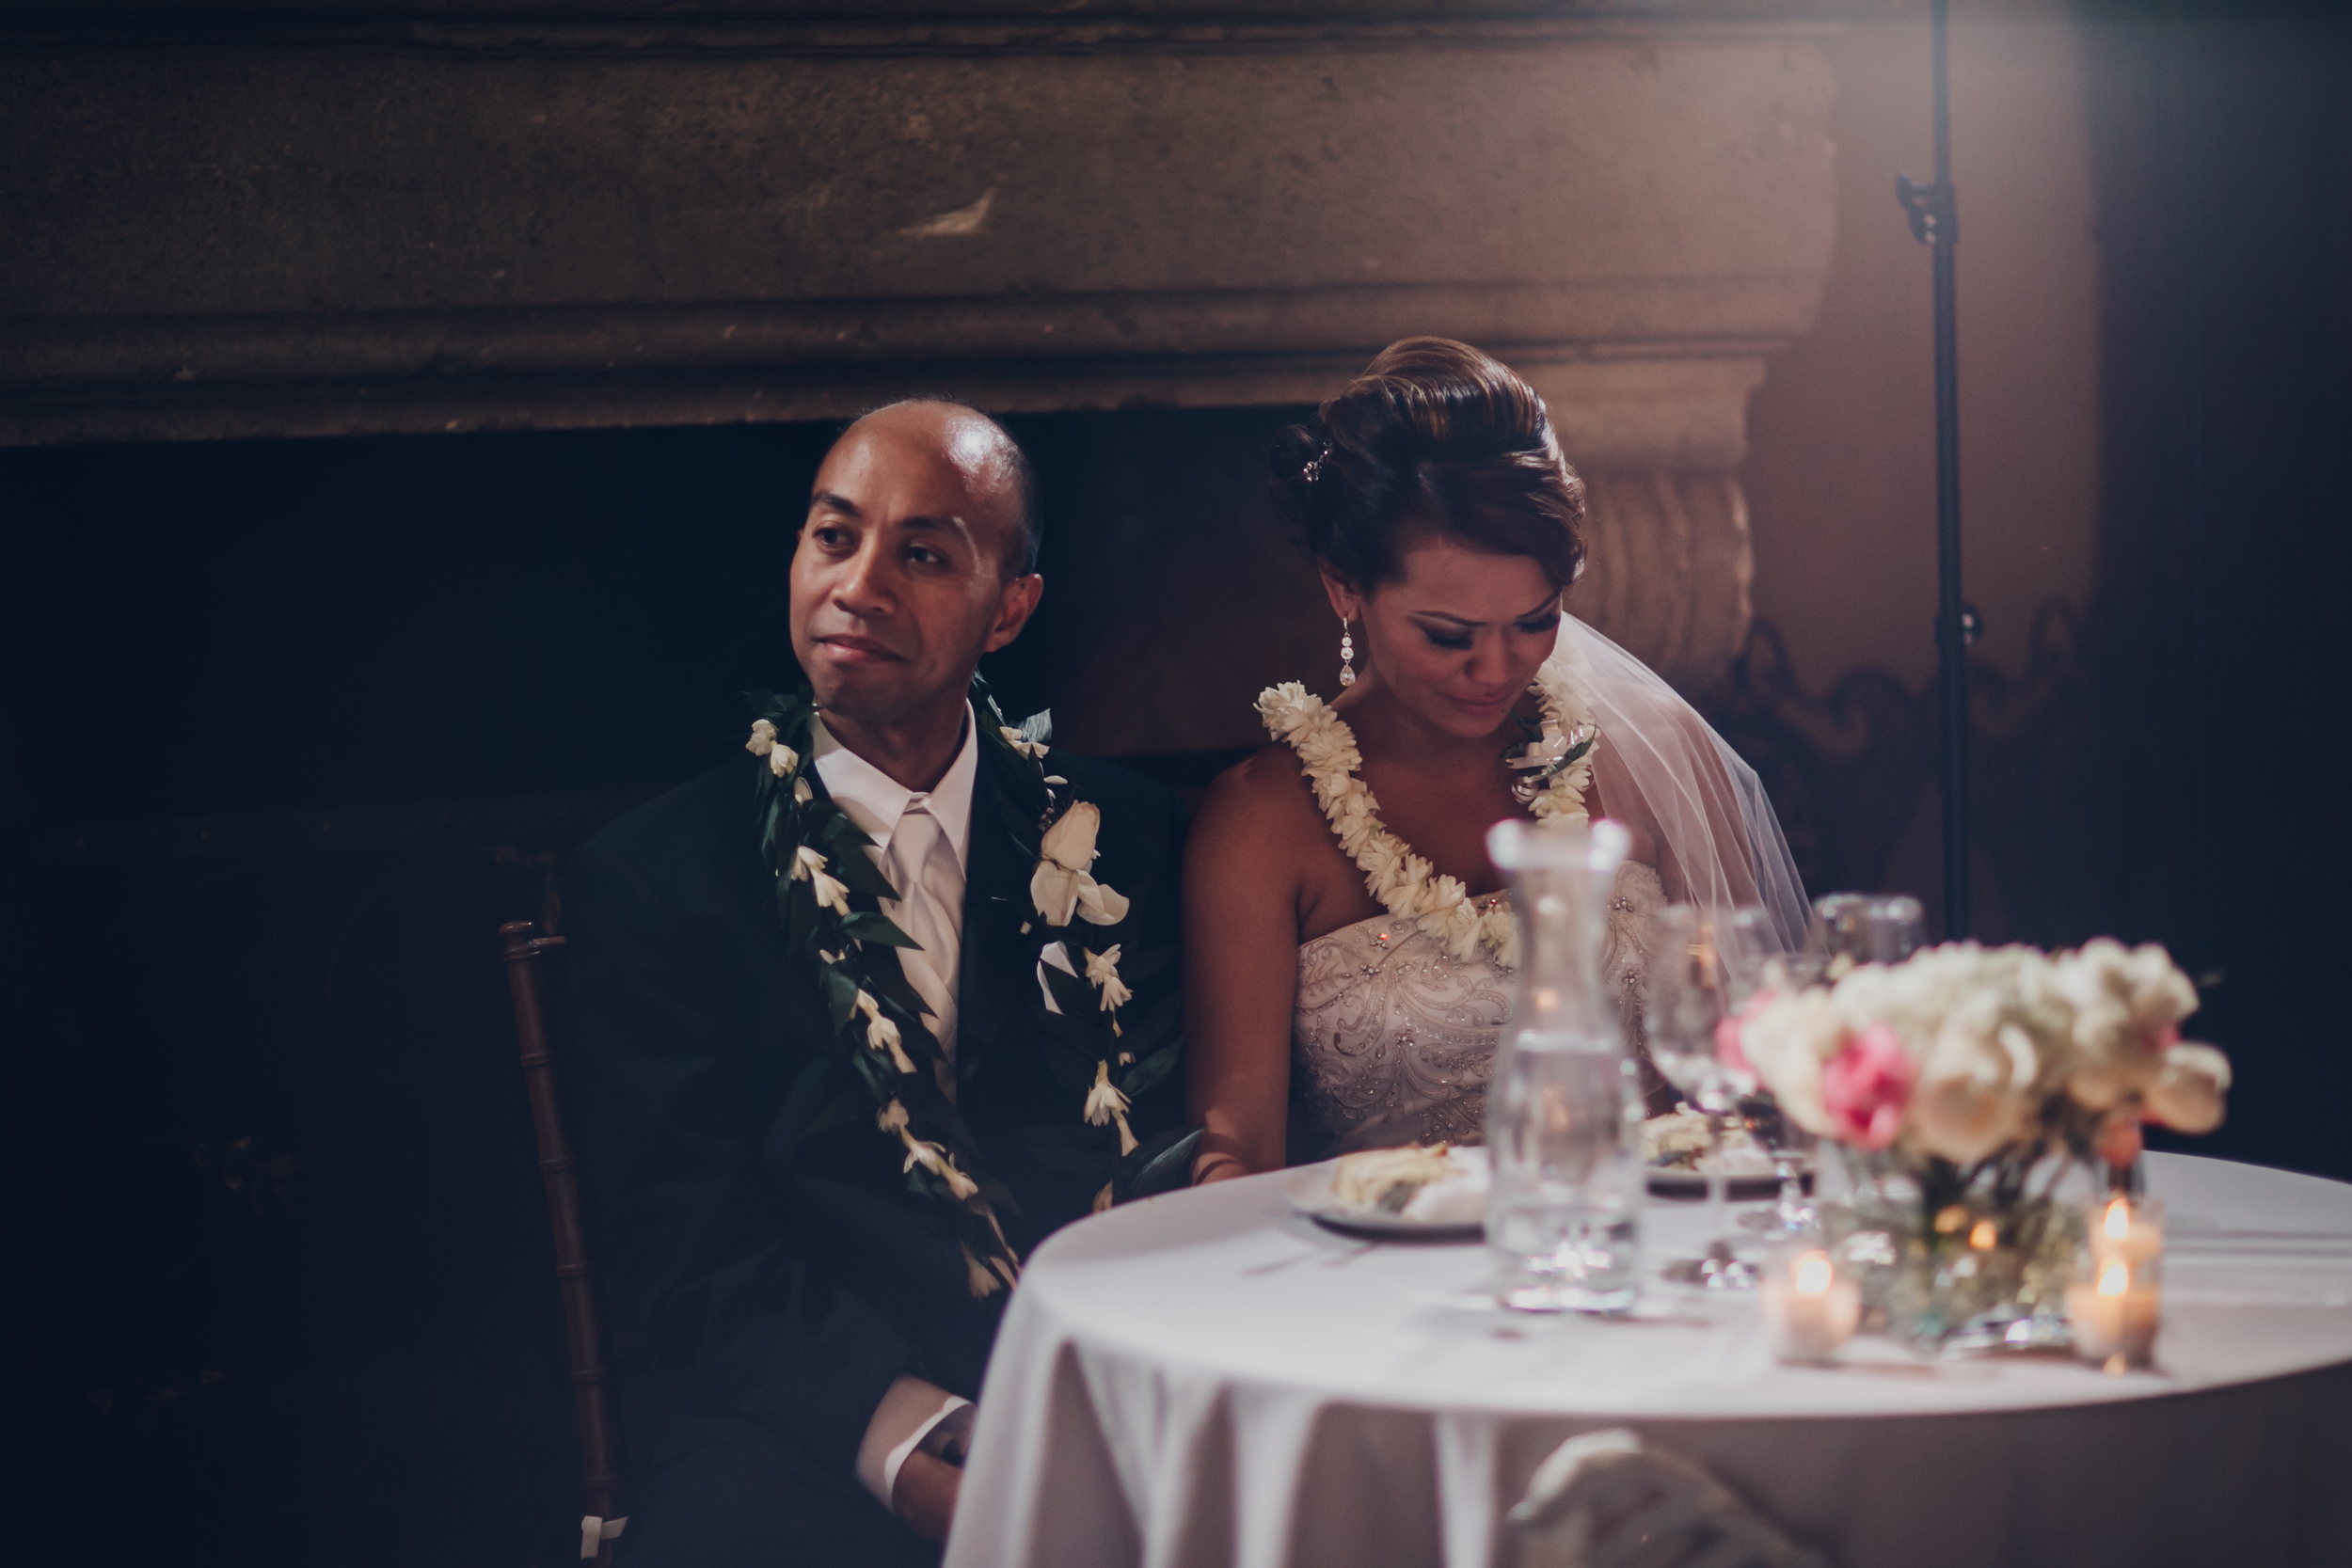 Shiela + Lester's Wedding 9-30-15 389.jpg